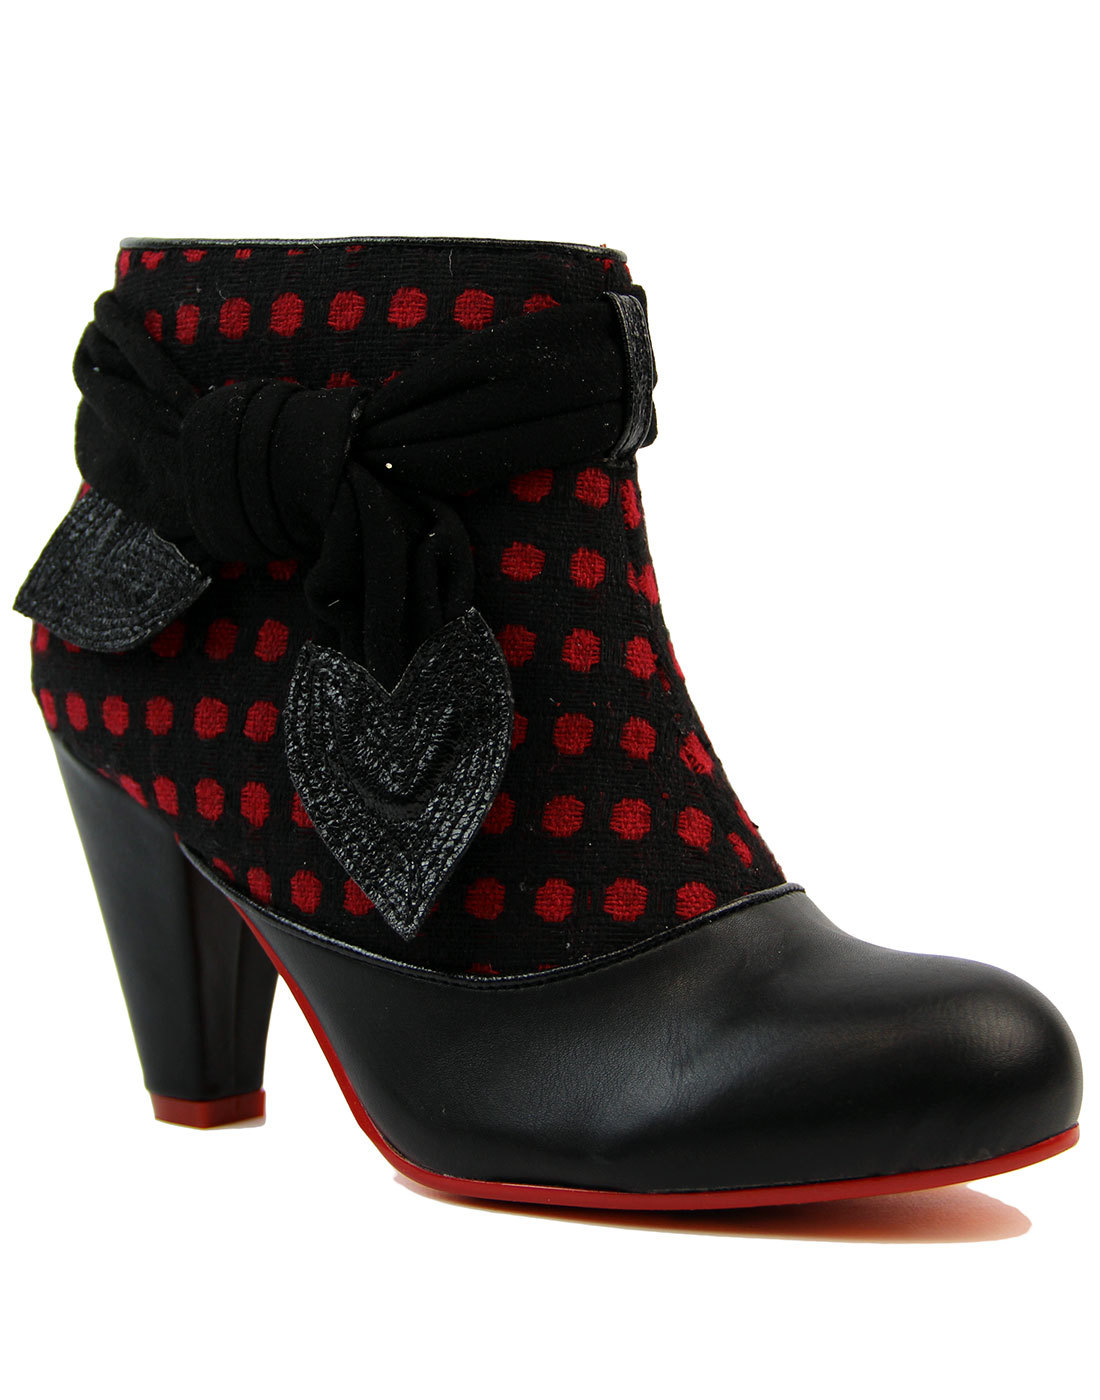 Sidewalk POETIC LICENCE Retro Mod Ankle Boots